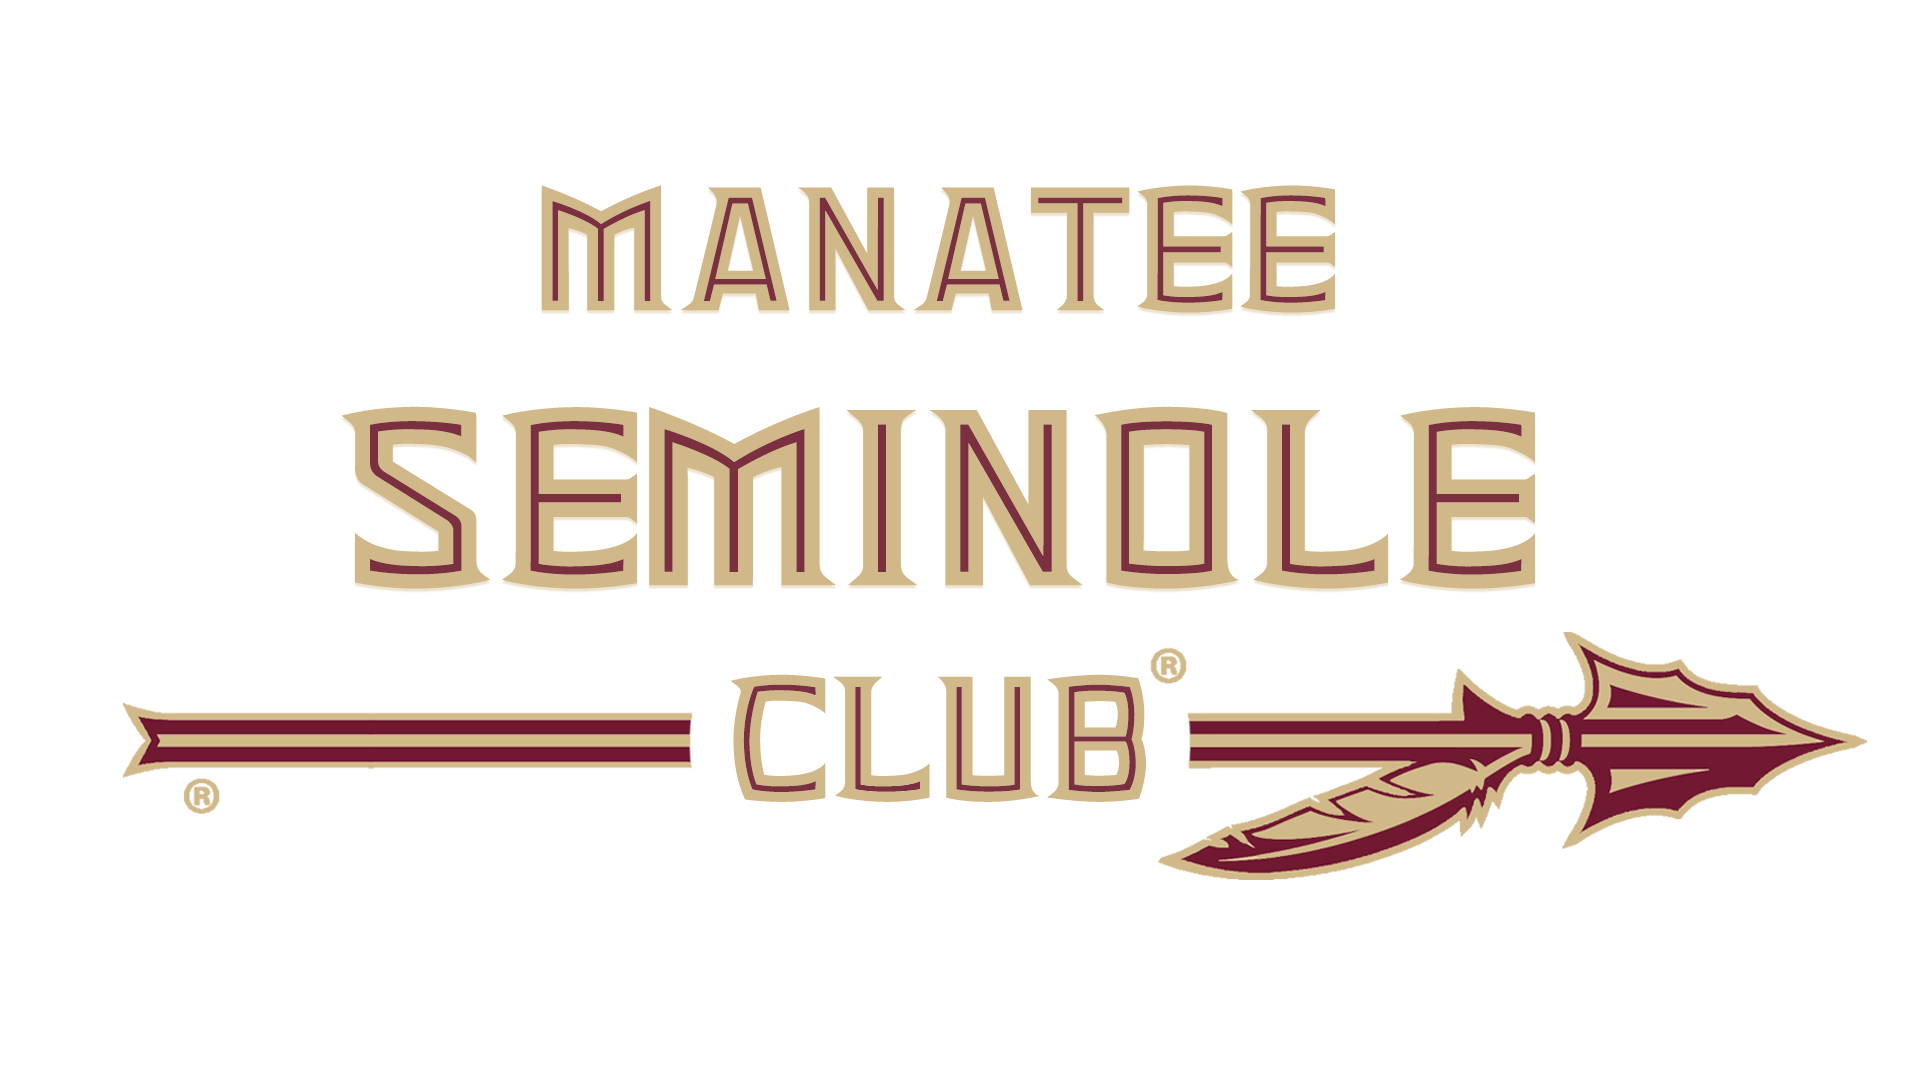 Manatee Seminole Club Logo